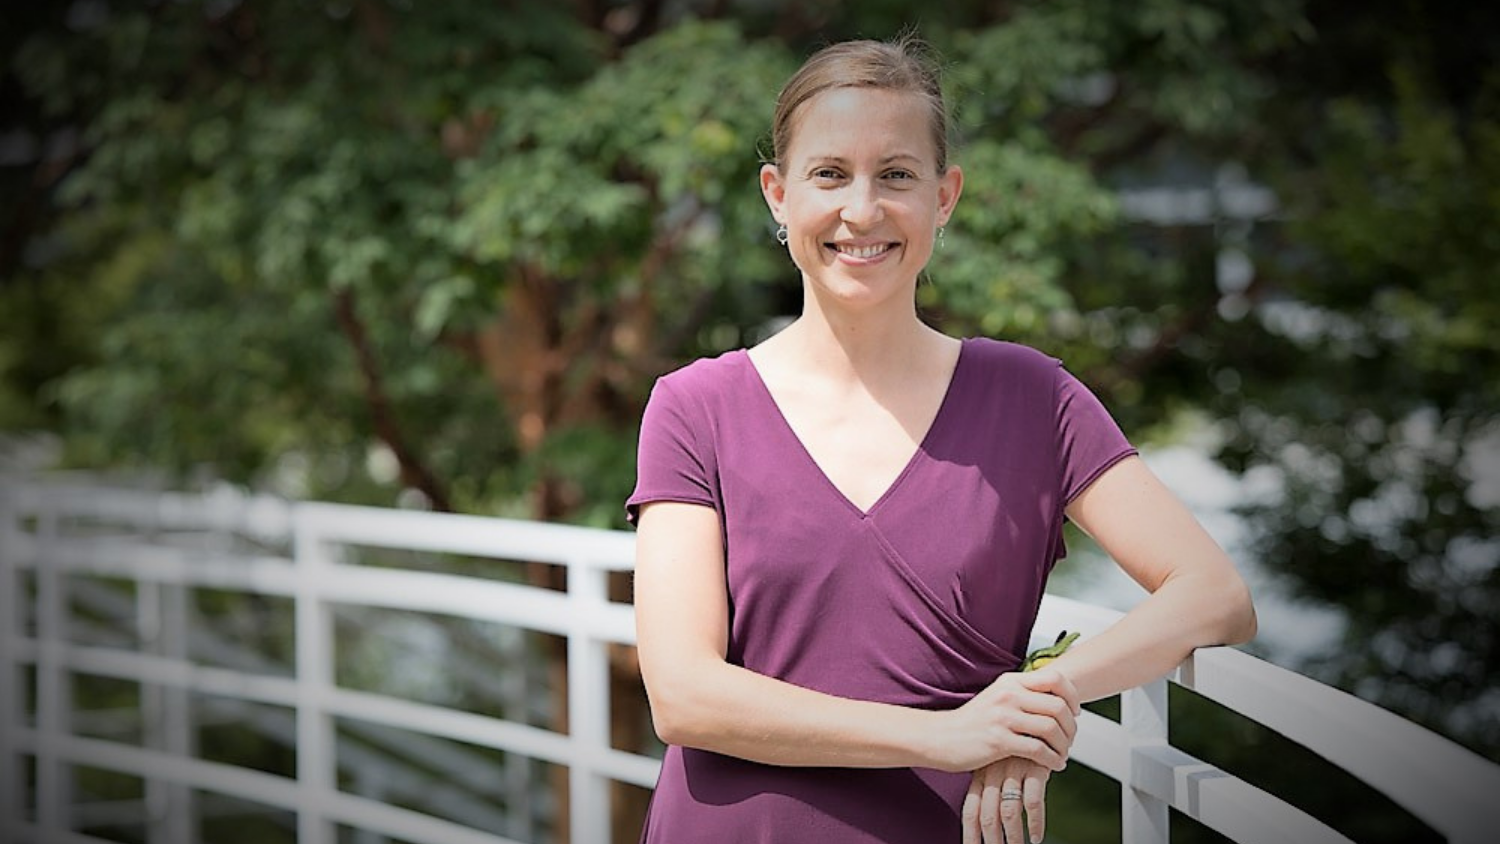 Khara Grieger co-leads Knowledge Transfer efforts between researchers and stakeholders for NC State's new $25 million NSF STEPS Center.